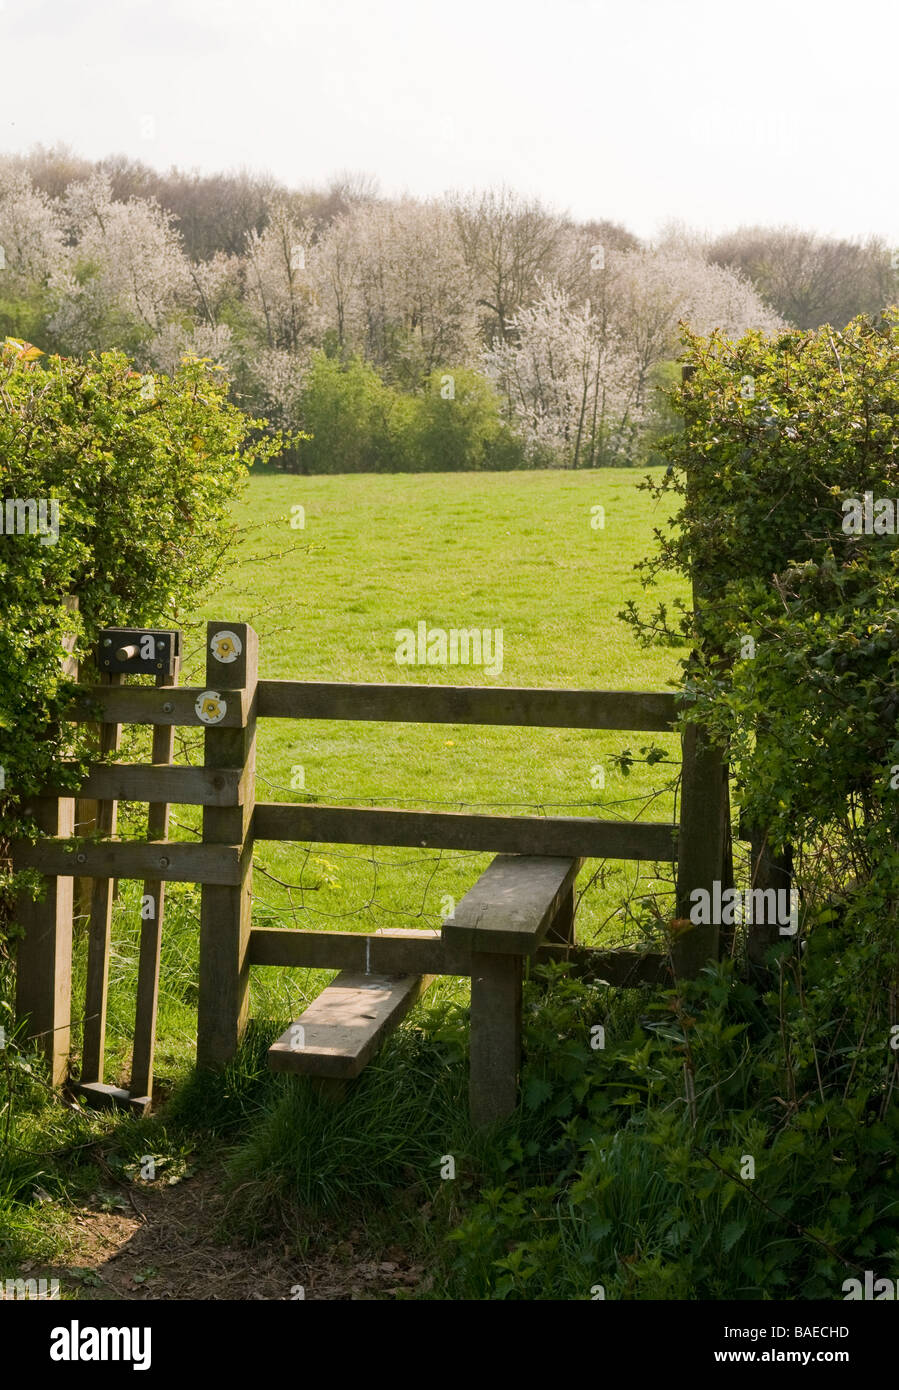 STILE ON A RURAL FOOTPATH, IN THE CHILTERN HILLS, BUCKINGHAMSHIRE, UK. - Stock Image